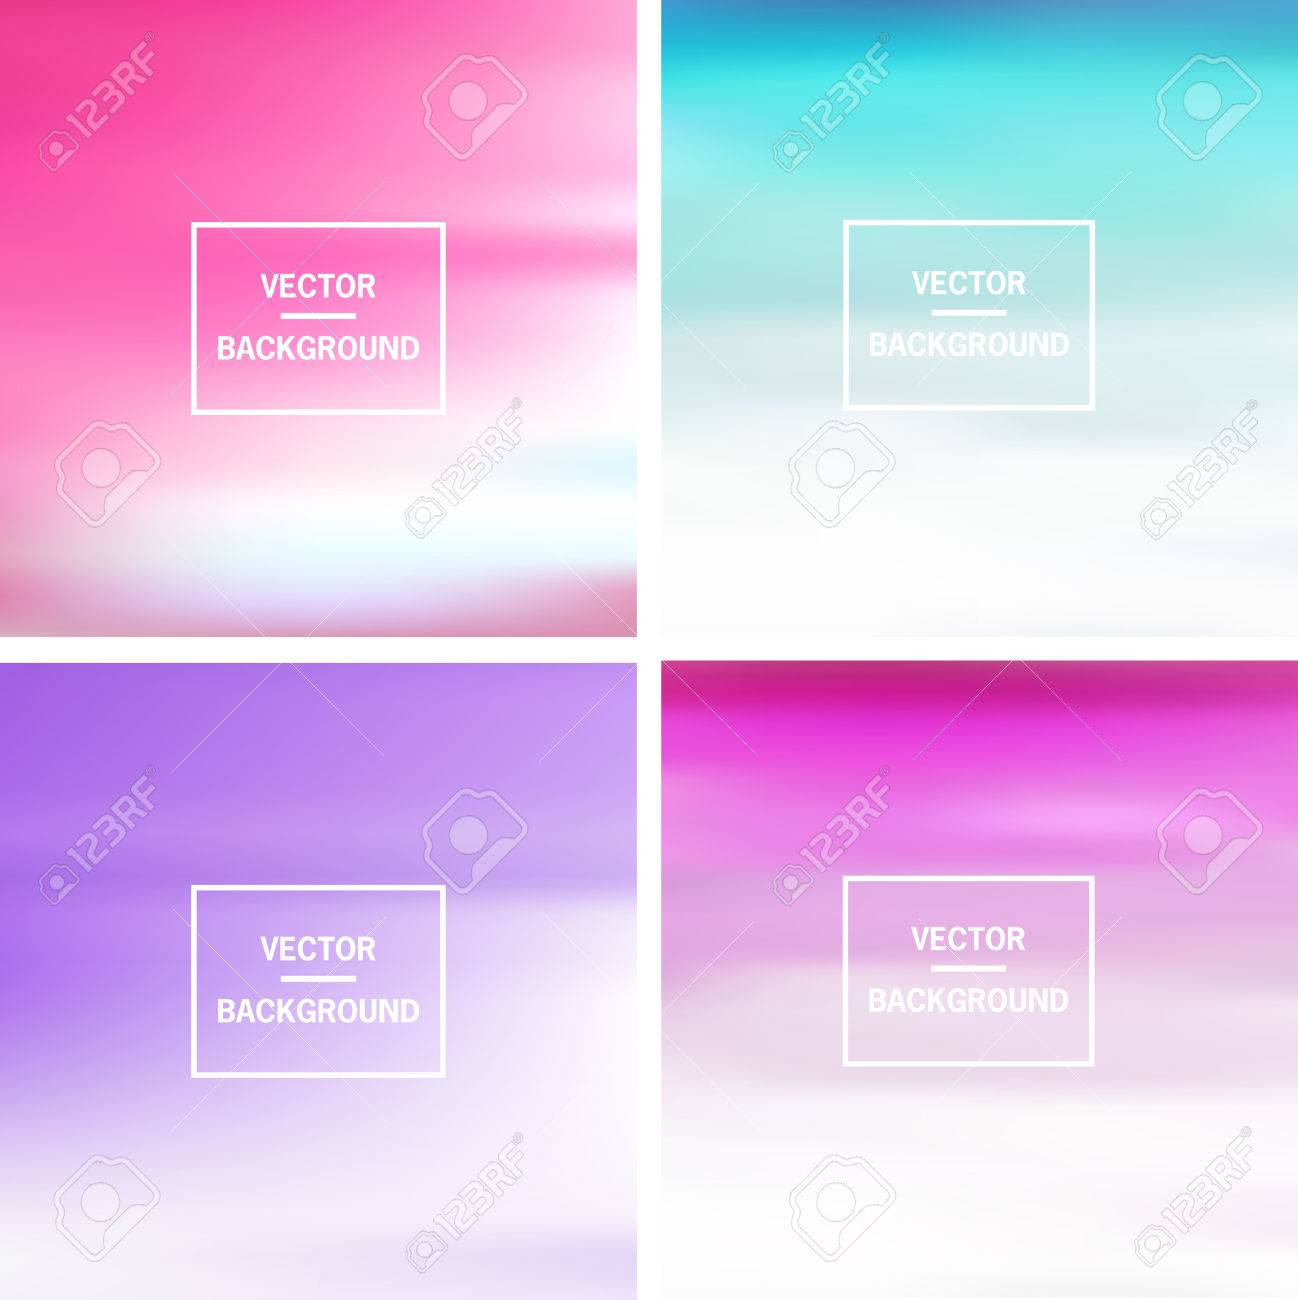 Abstract colorful template blurred vector backgrounds. Elements for your website, application, banner, presentation. - 43947677